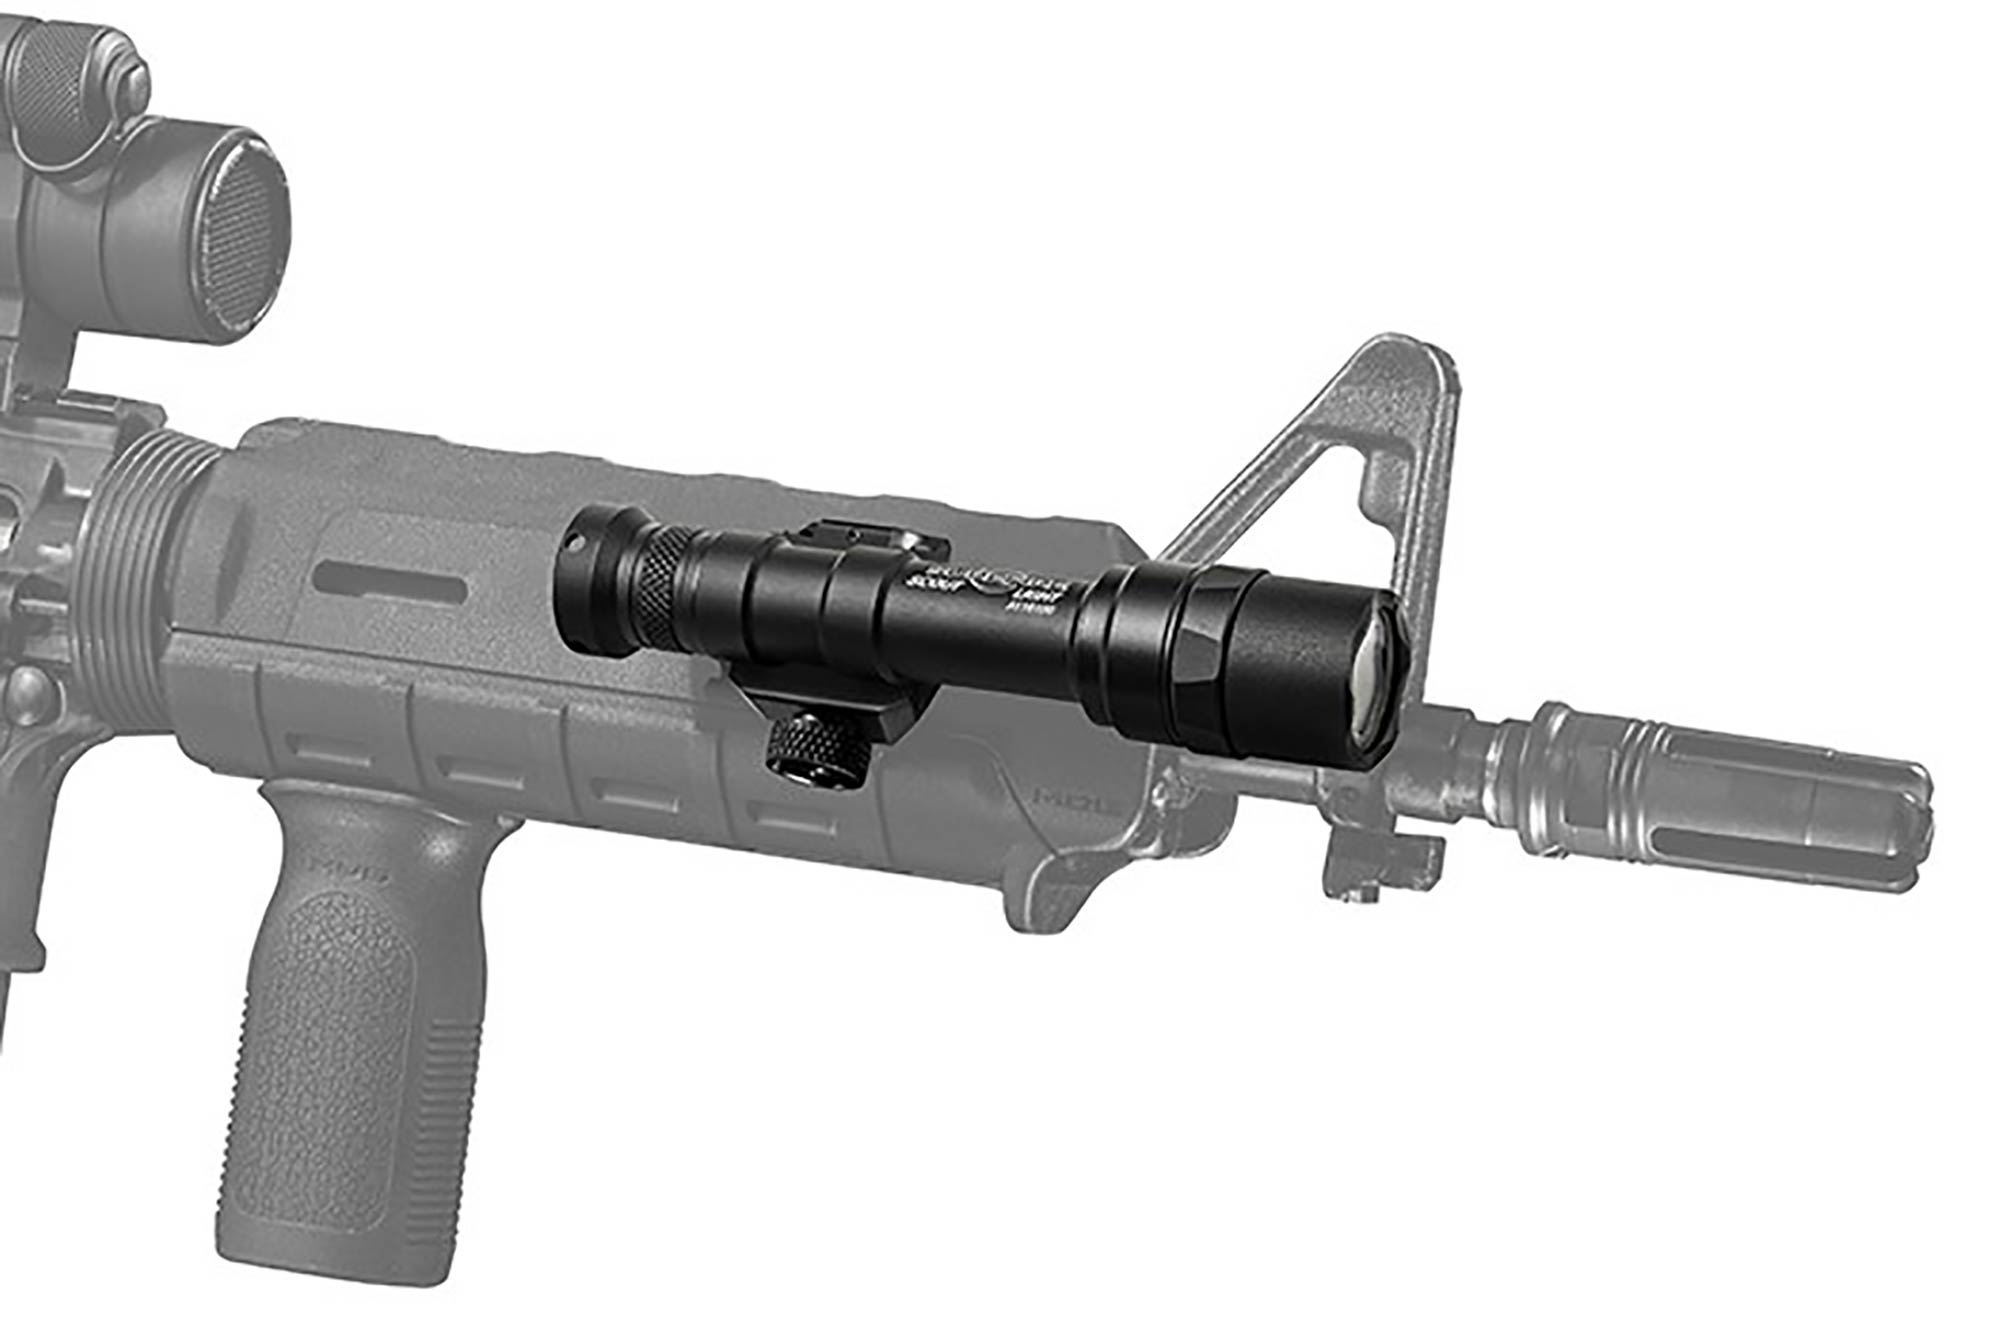 The SureFire M600 Ultra Scout Light features an integrated picatinny rail for mounting on your rifle